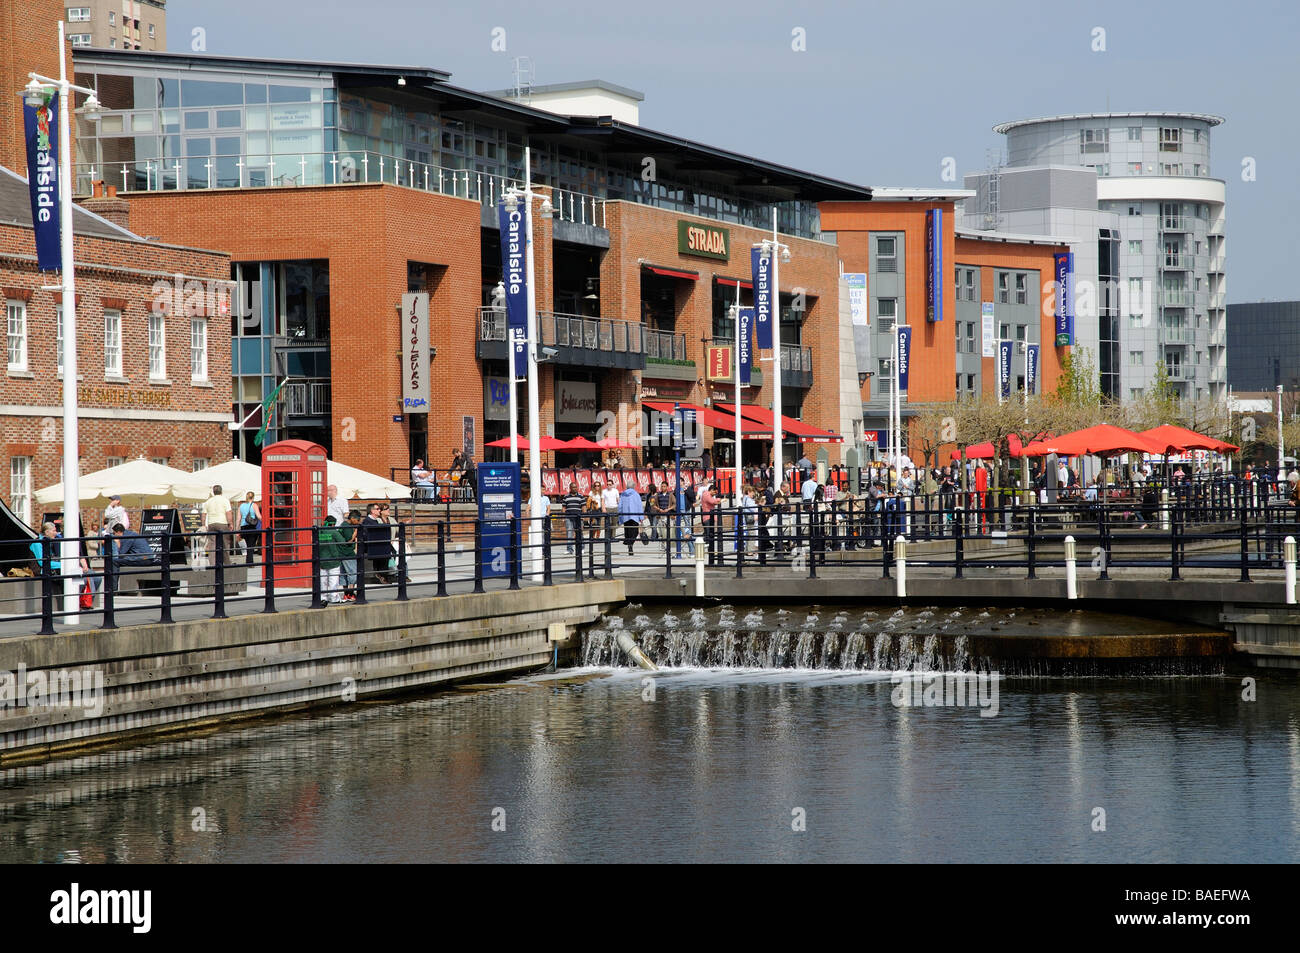 Gunwharf Quays property development of housing and shopping in Portsmouth England UK - Stock Image